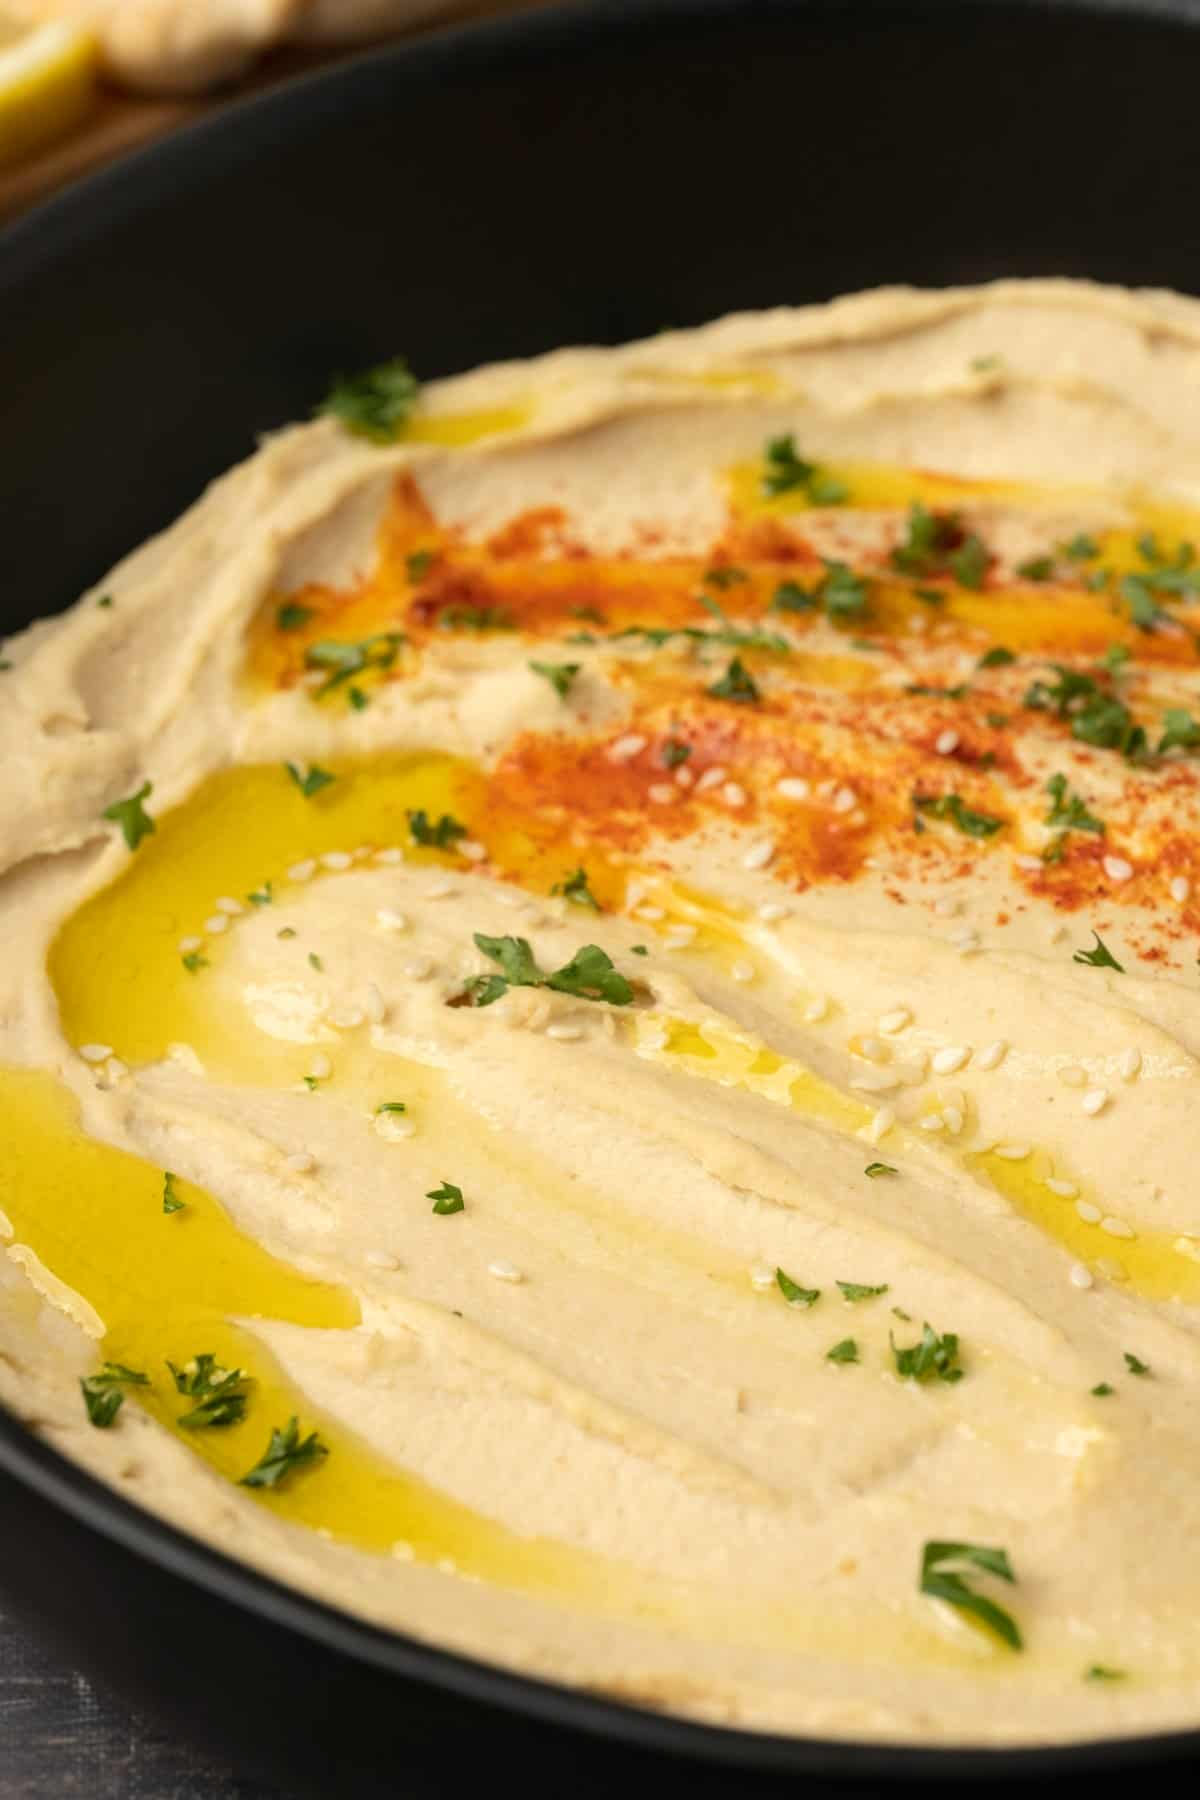 Hummus drizzled with olive oil in a black bowl.